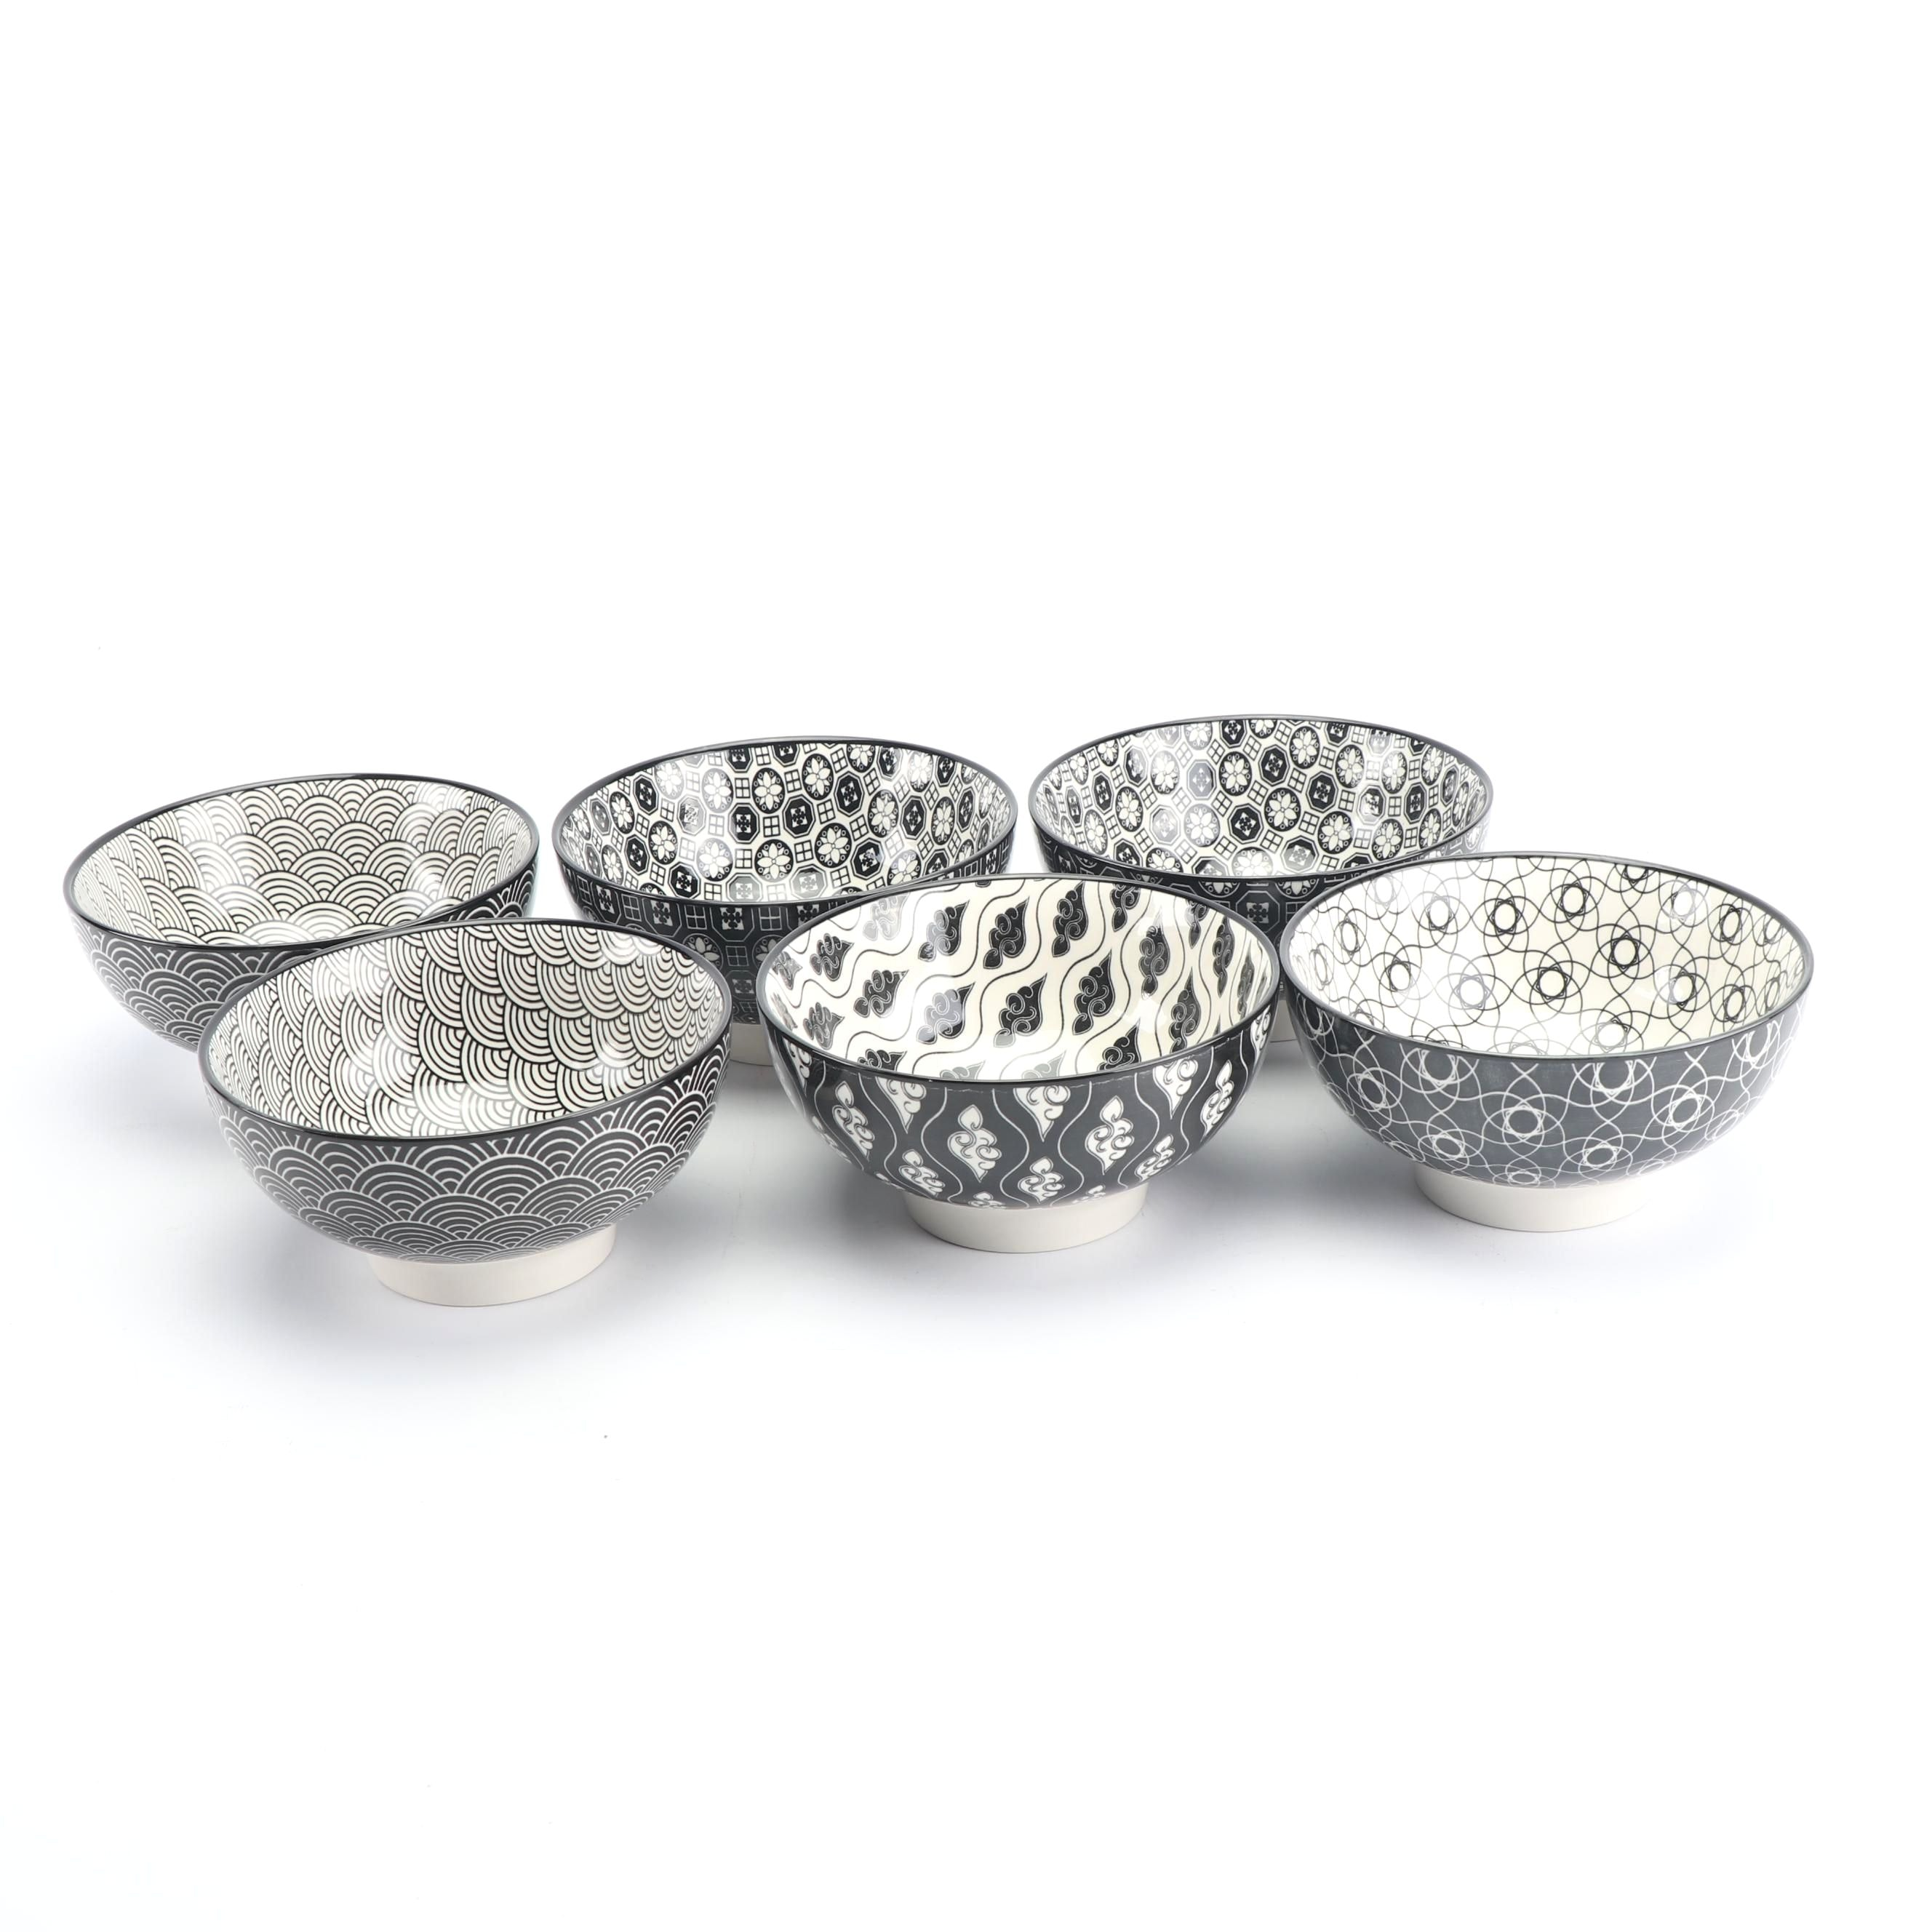 Black and White Ceramic Patterned Bowls